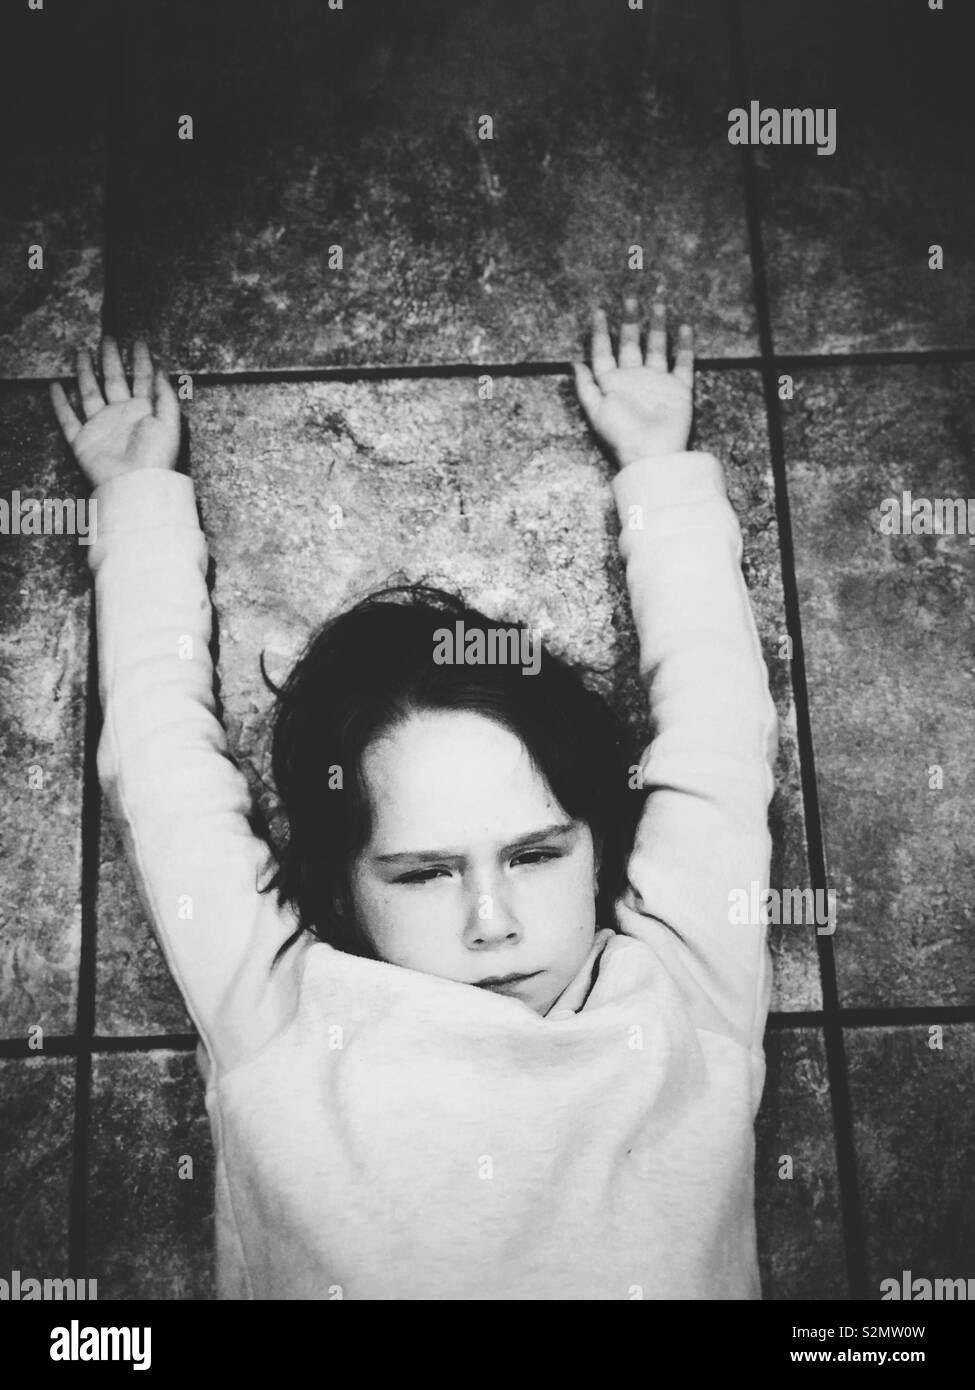 Angry young girl laying on tile floor with arms up - Stock Image